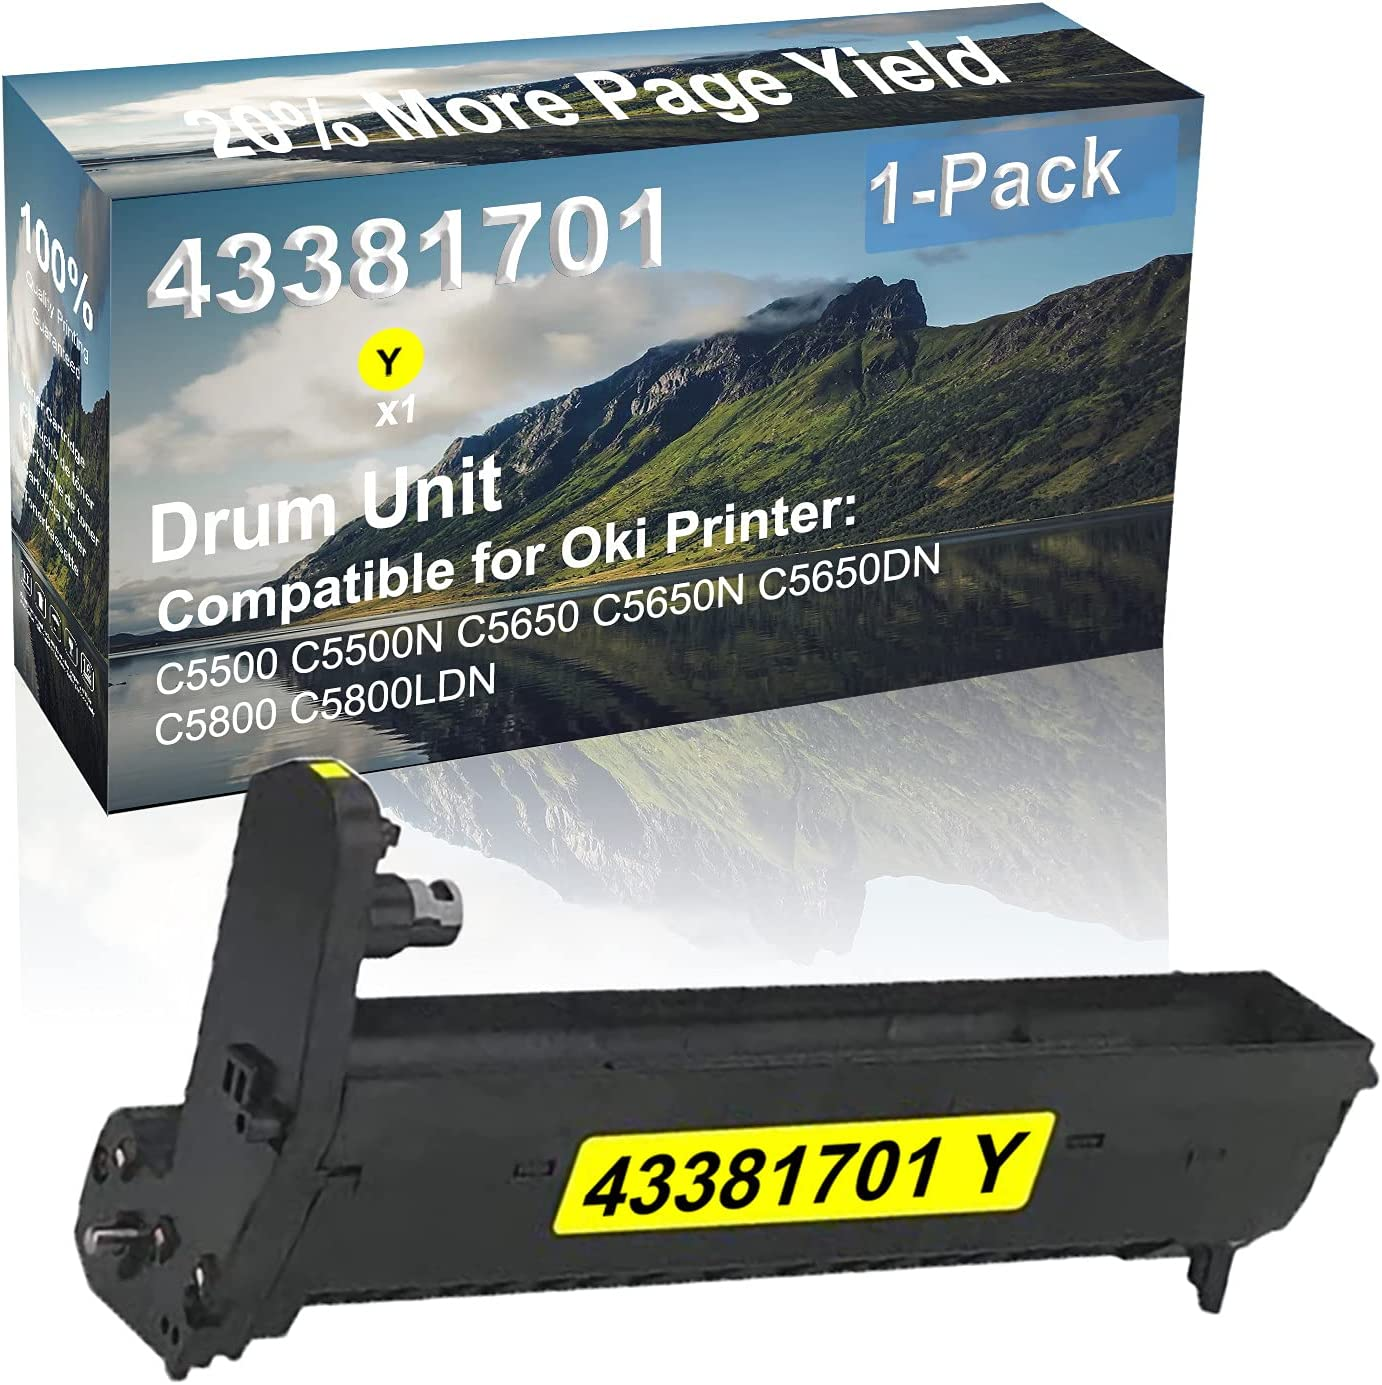 1-Pack (Yellow) Compatible High Yield 43381701 Drum Unit Used for Oki C5800 C5800LDNDW Printer